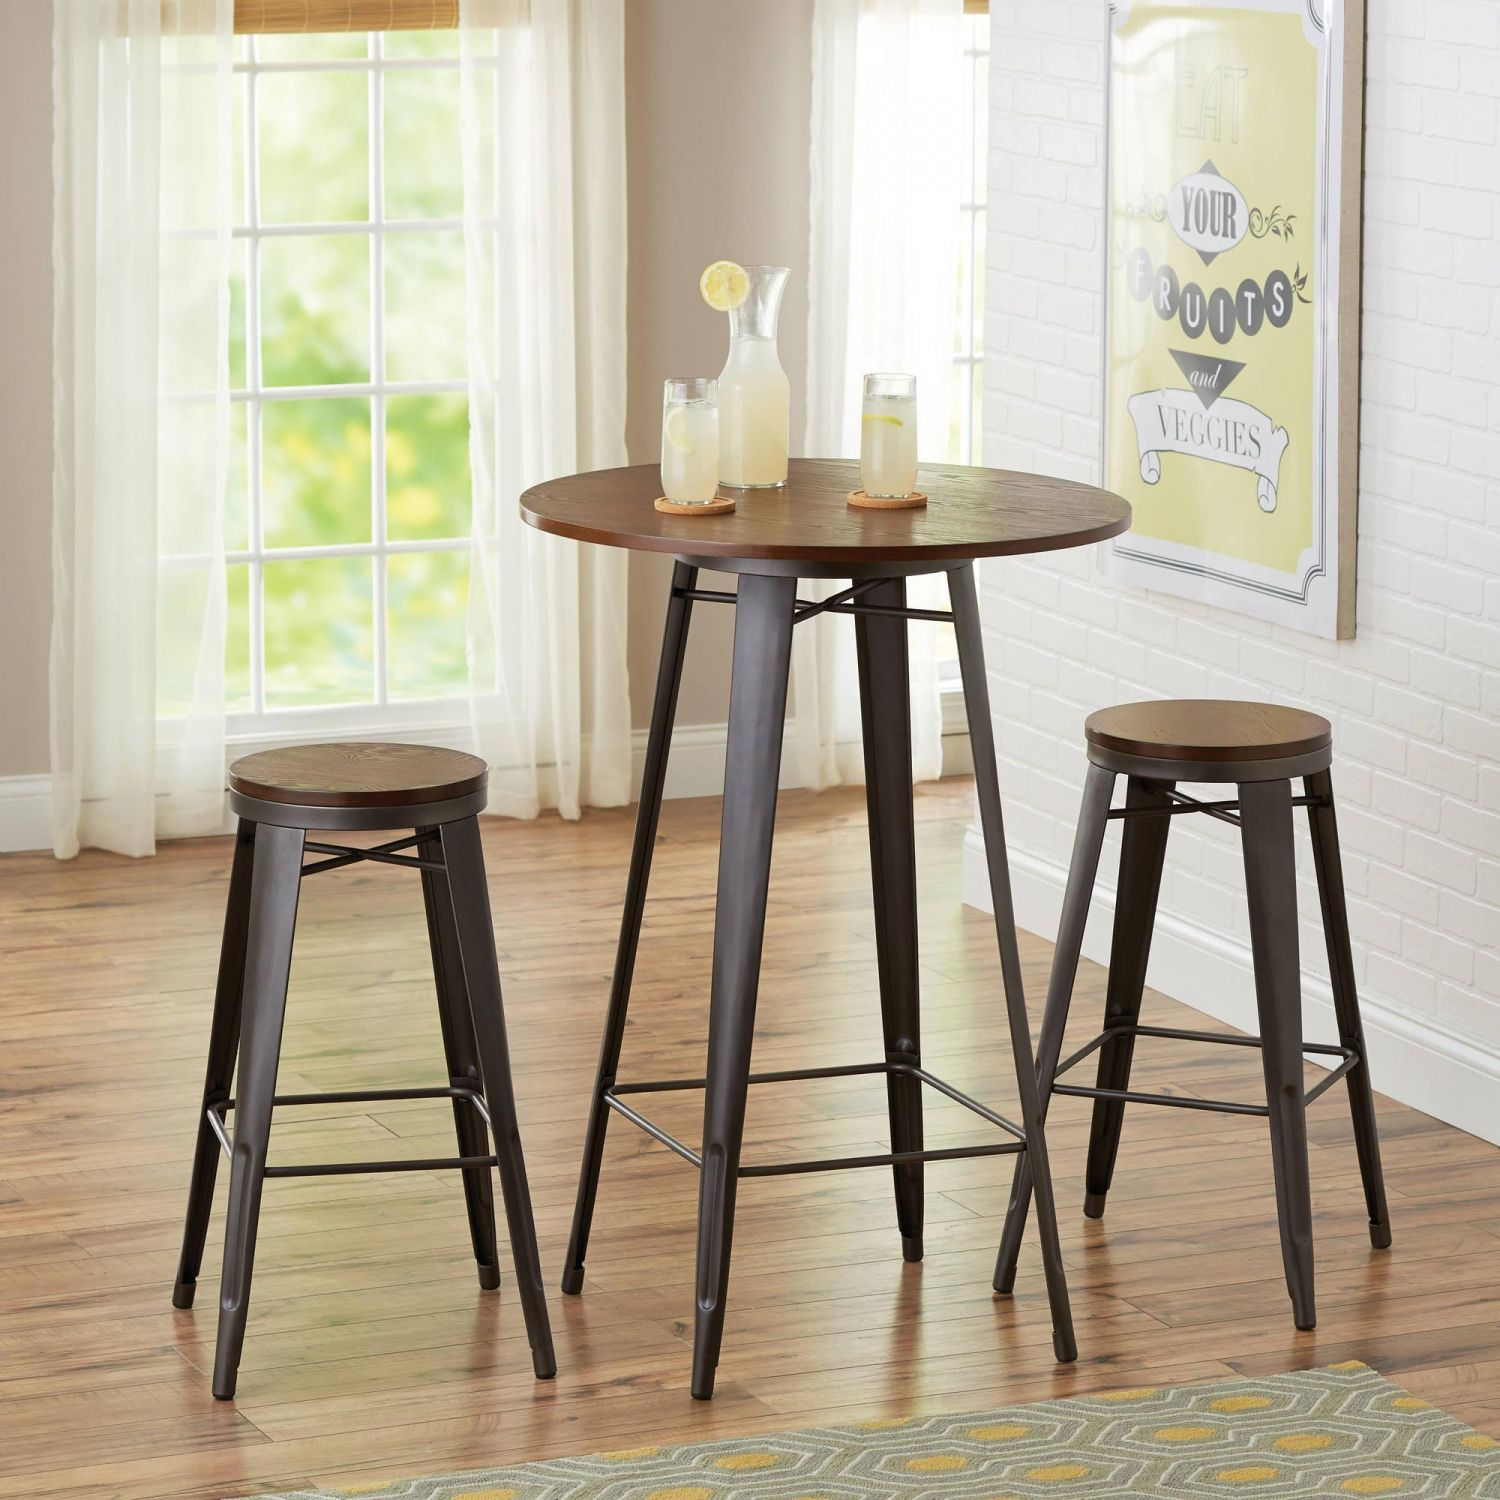 Walmart kitchen table chairs cheap kitchen island ideas check more at http www entropiads com walmart kitchen table chairs